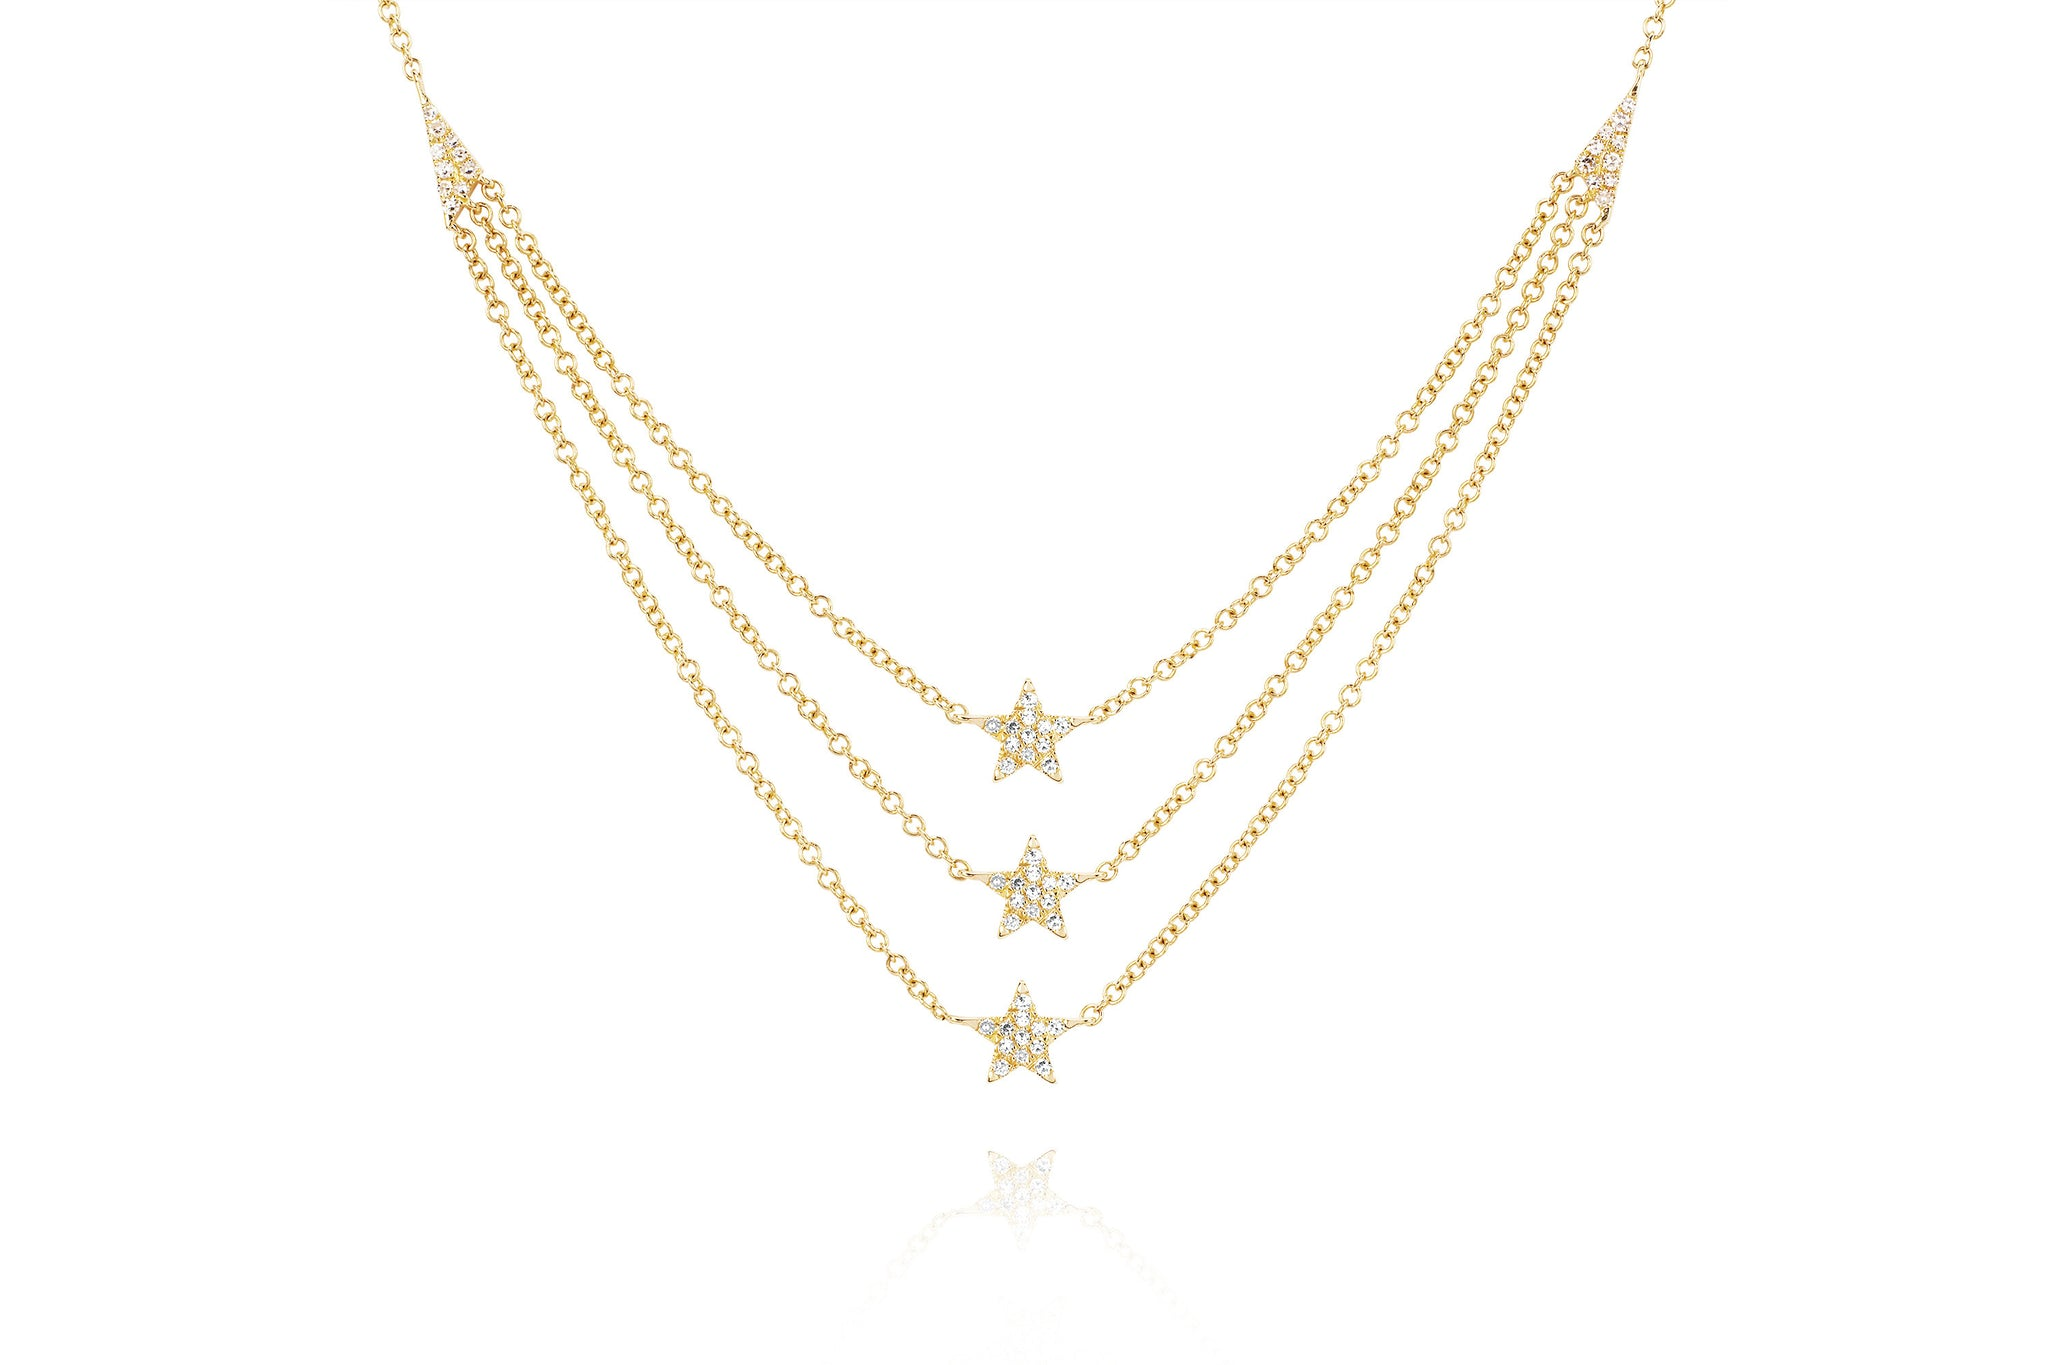 EF Collection Diamond Star Charm Necklace in 14K Yellow Gold teWUyy1jL